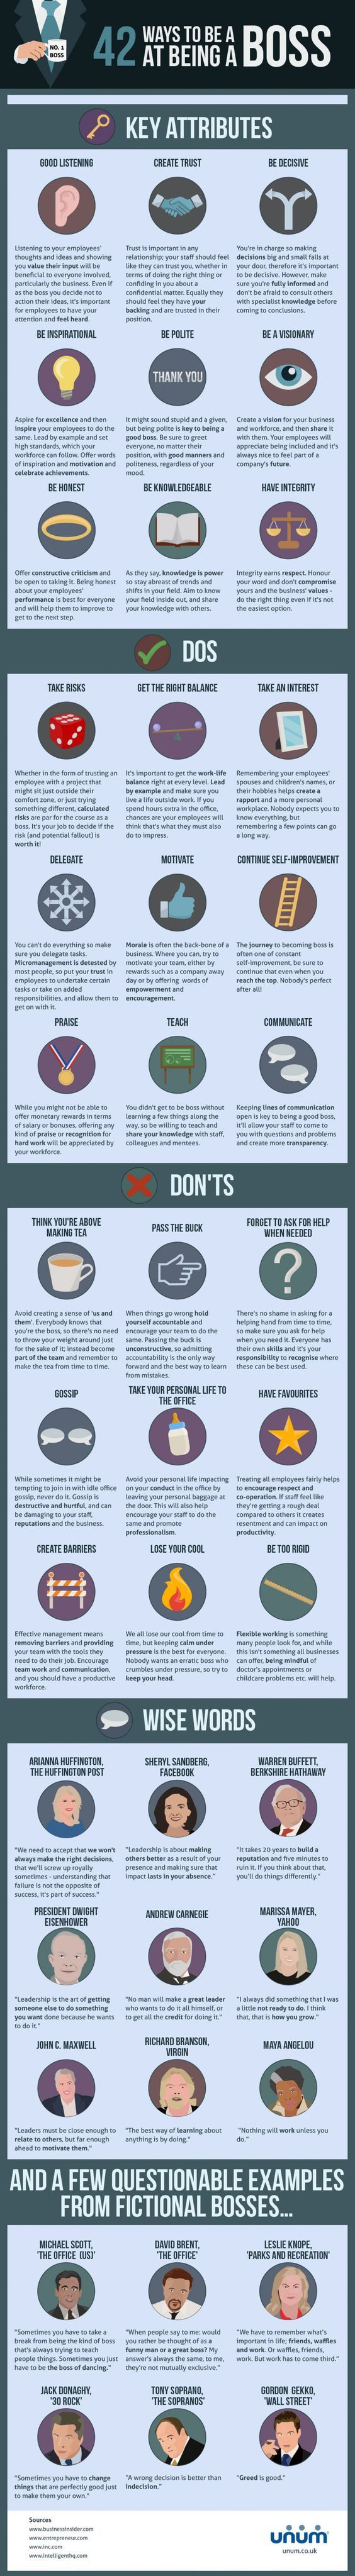 42 Ways to be a Boss at Being a Boss.